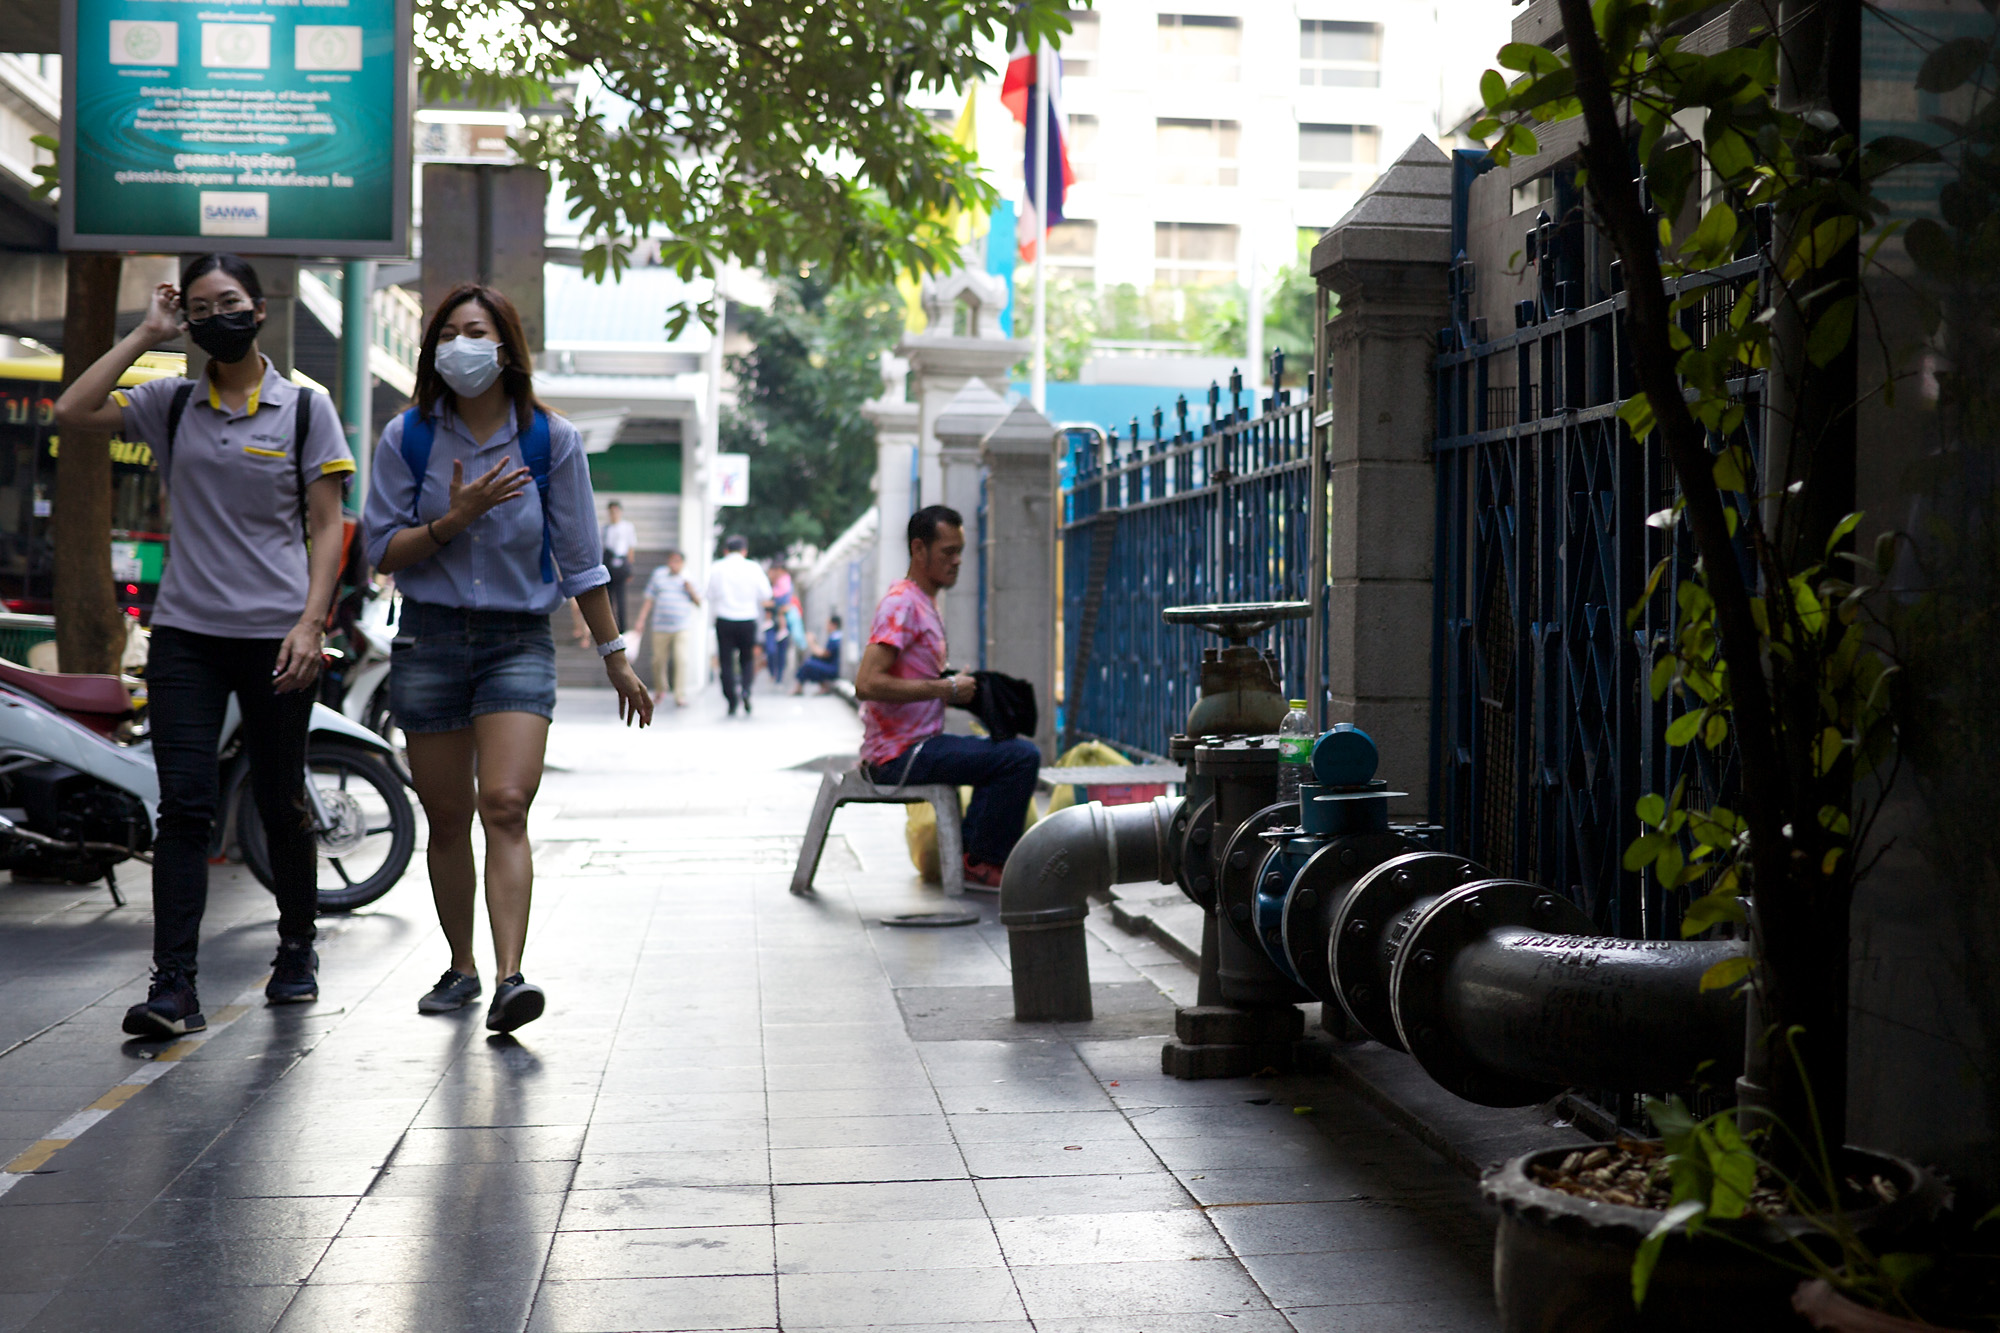 two health workers in masks, walking past a massive fire hydrant